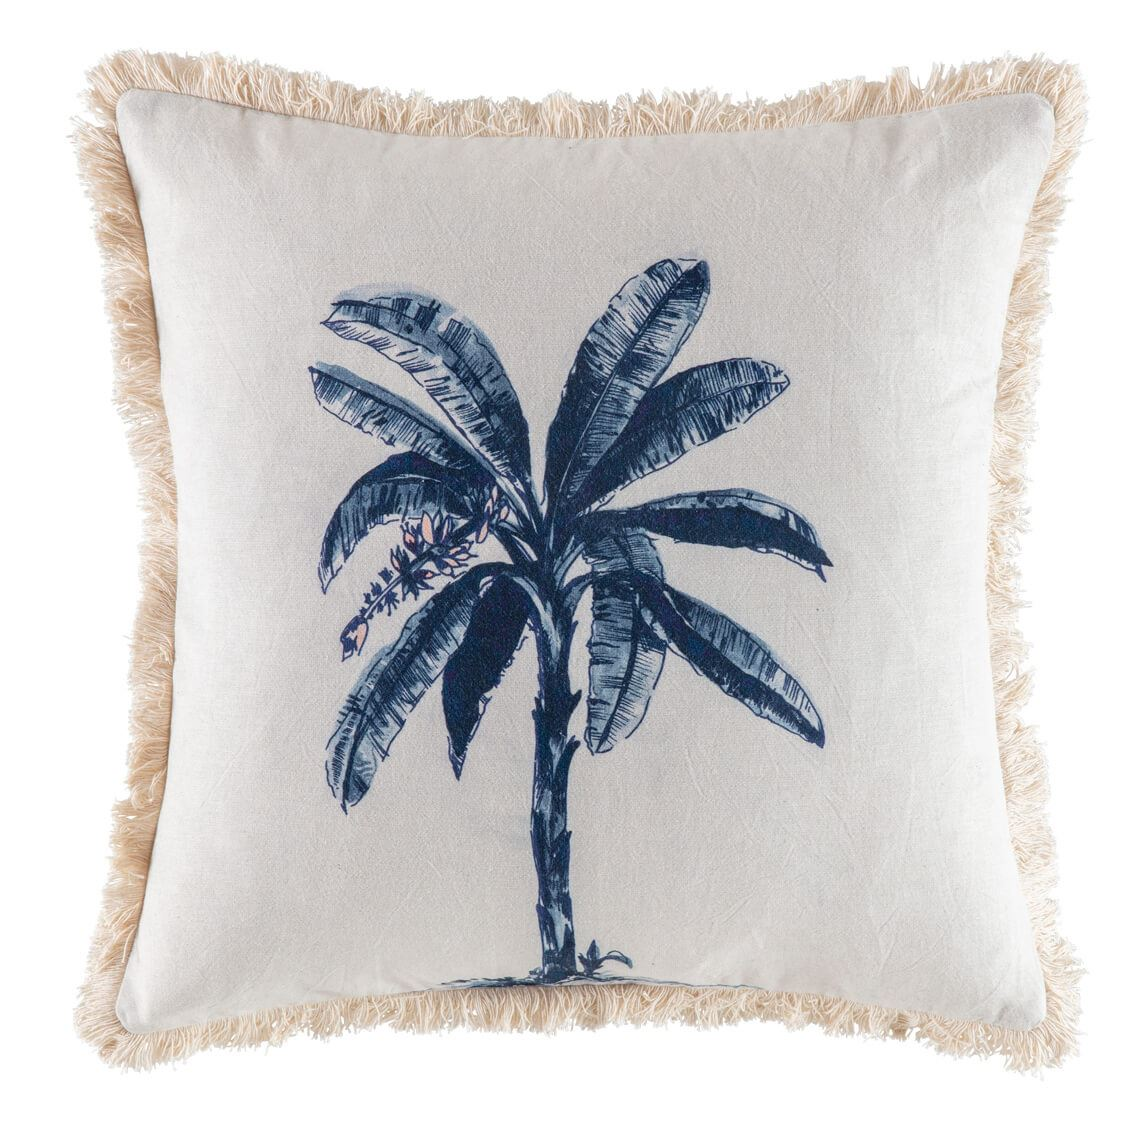 Hamaba Cushion, Size W 50cm x D 15cm x H 50cm in Natural/Blue Freedom